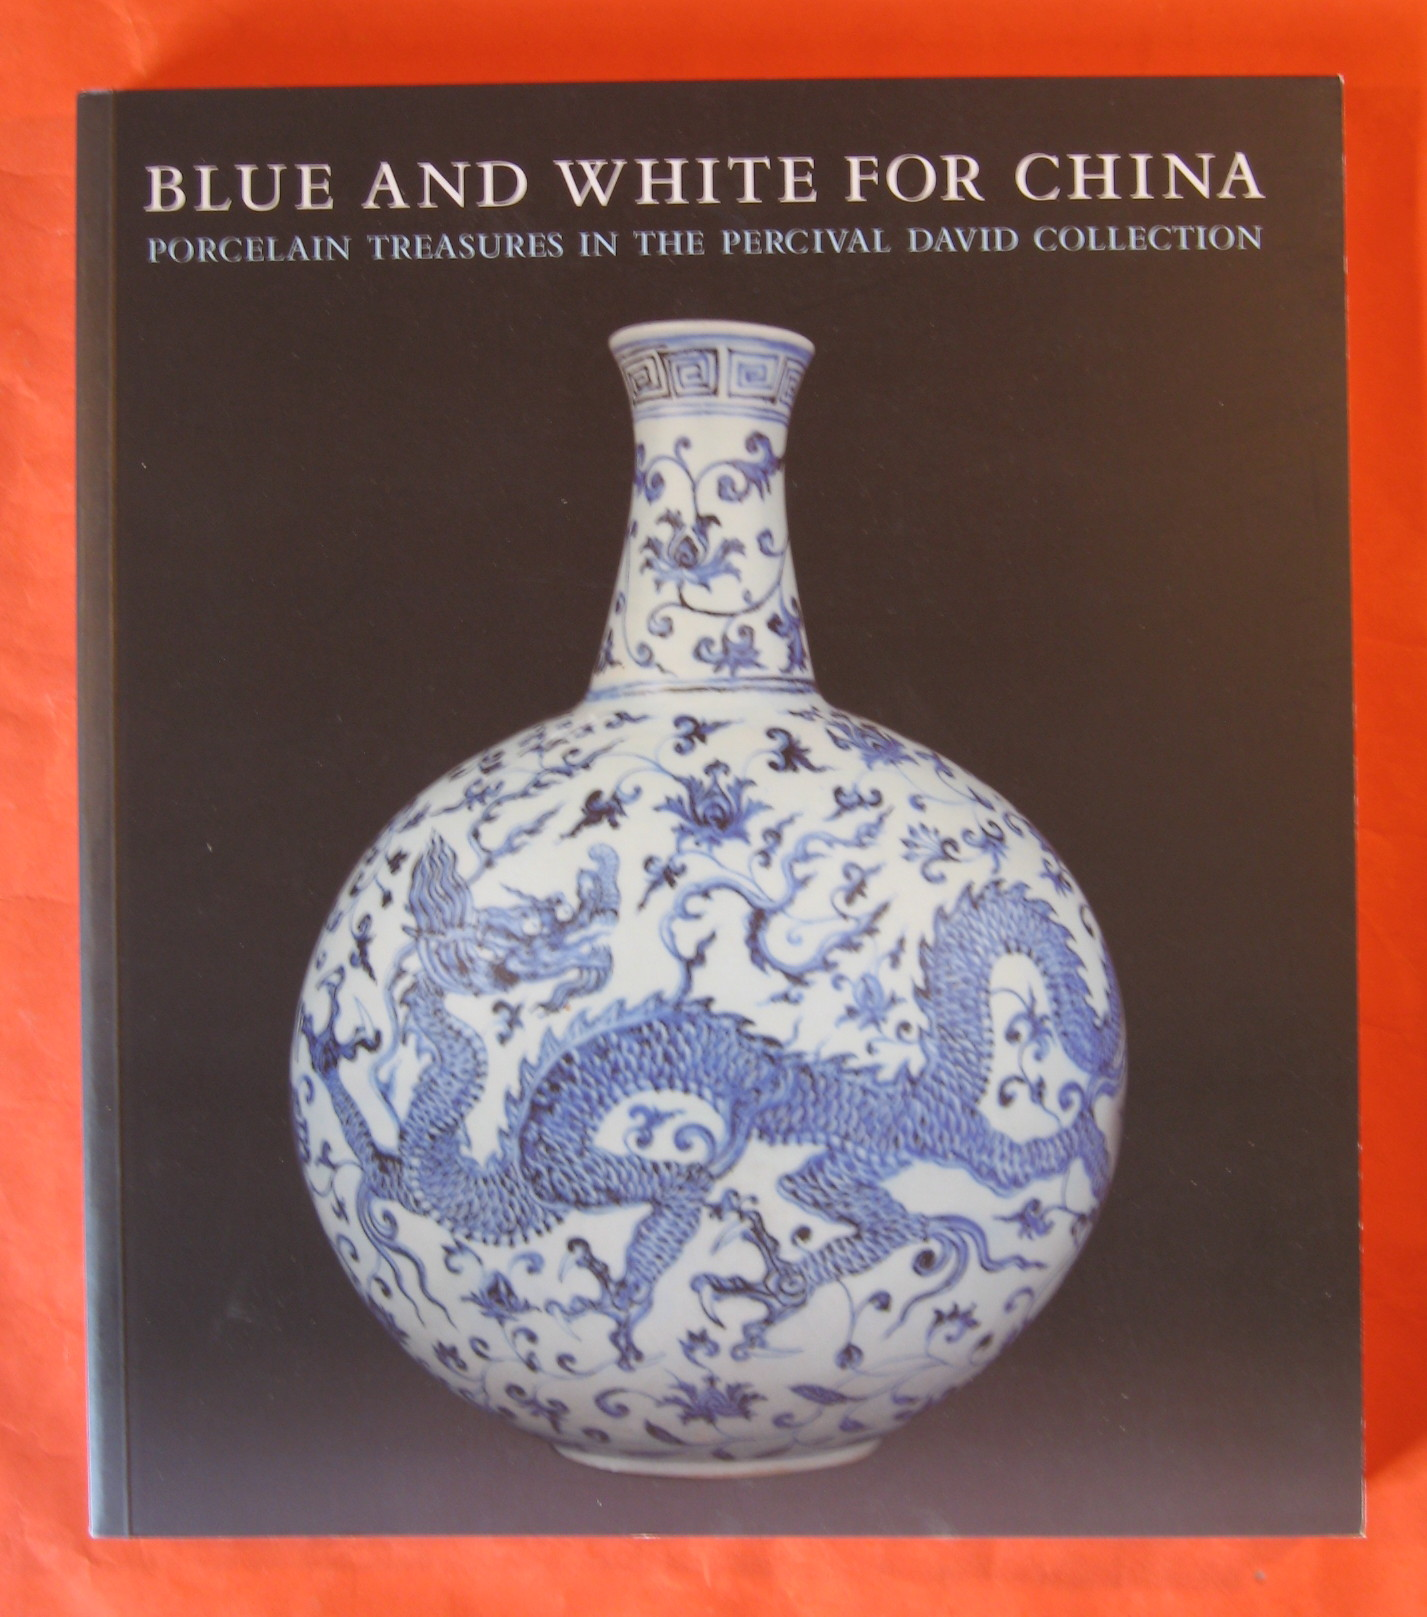 Blue and White for China. Porcelain Treasures in the Percival David Collection., Pierson, Stacey